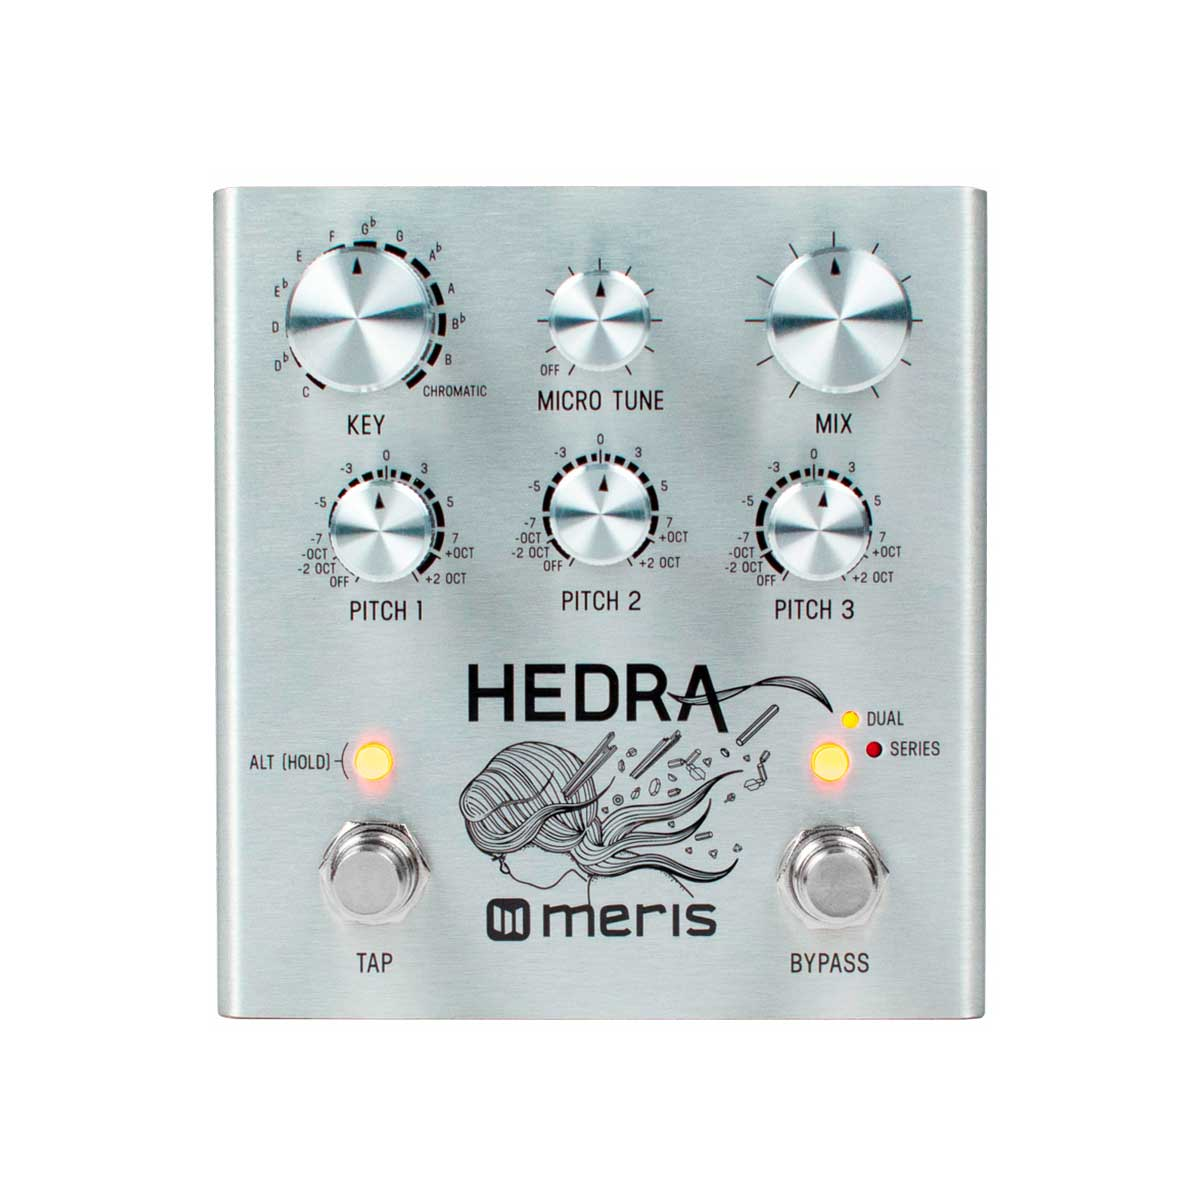 Meris Hedra 3-Voice Rhythmic Pitch Shifter Pedal (Pre-Order Only)